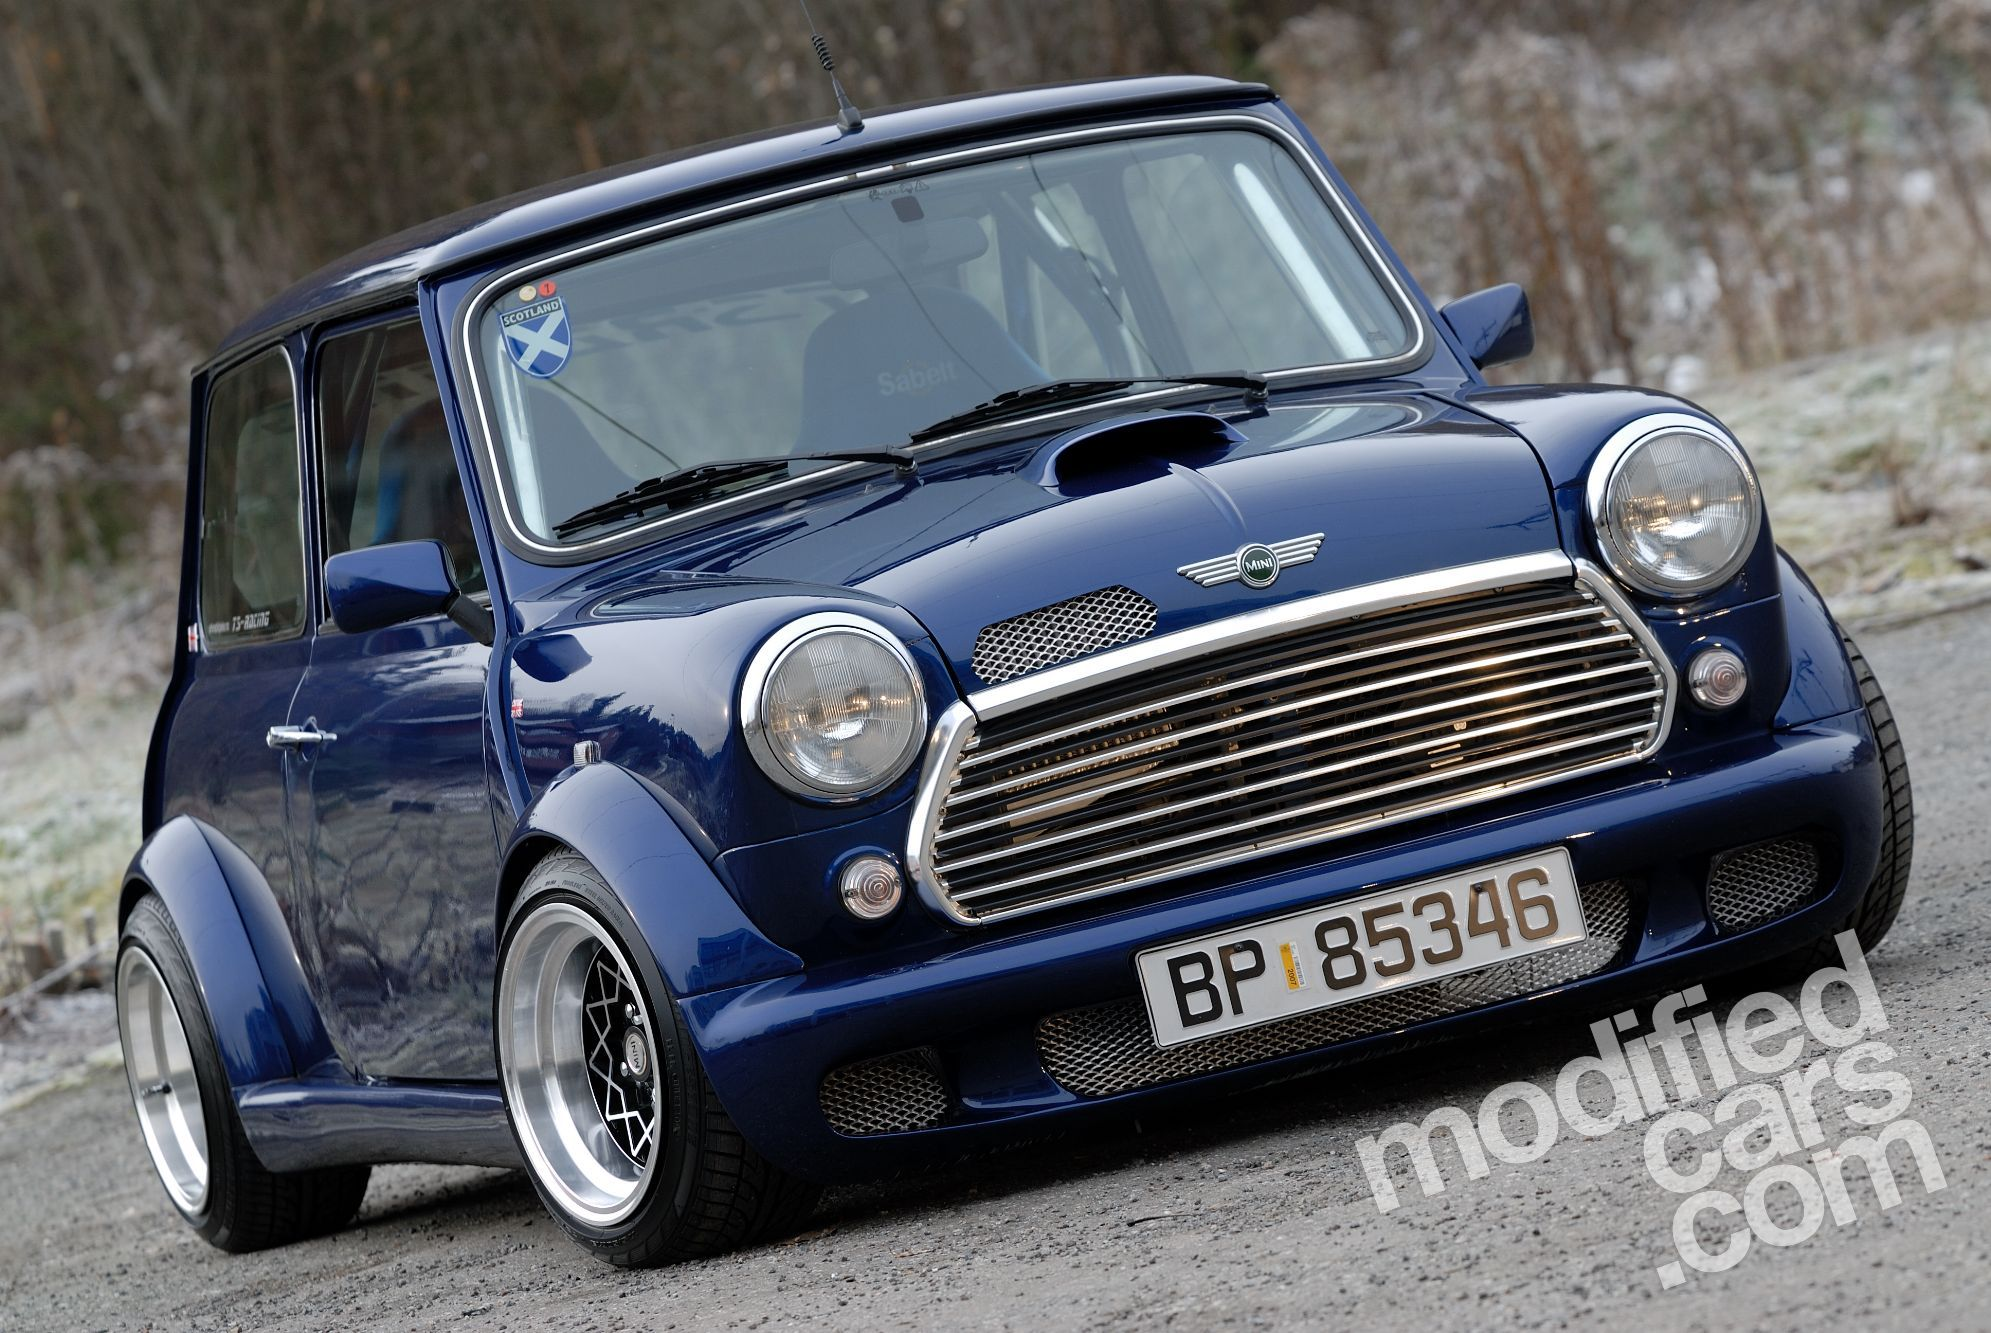 Modified Z Car | THE MINI COOPER | Pinterest | Cars, Minis and ...